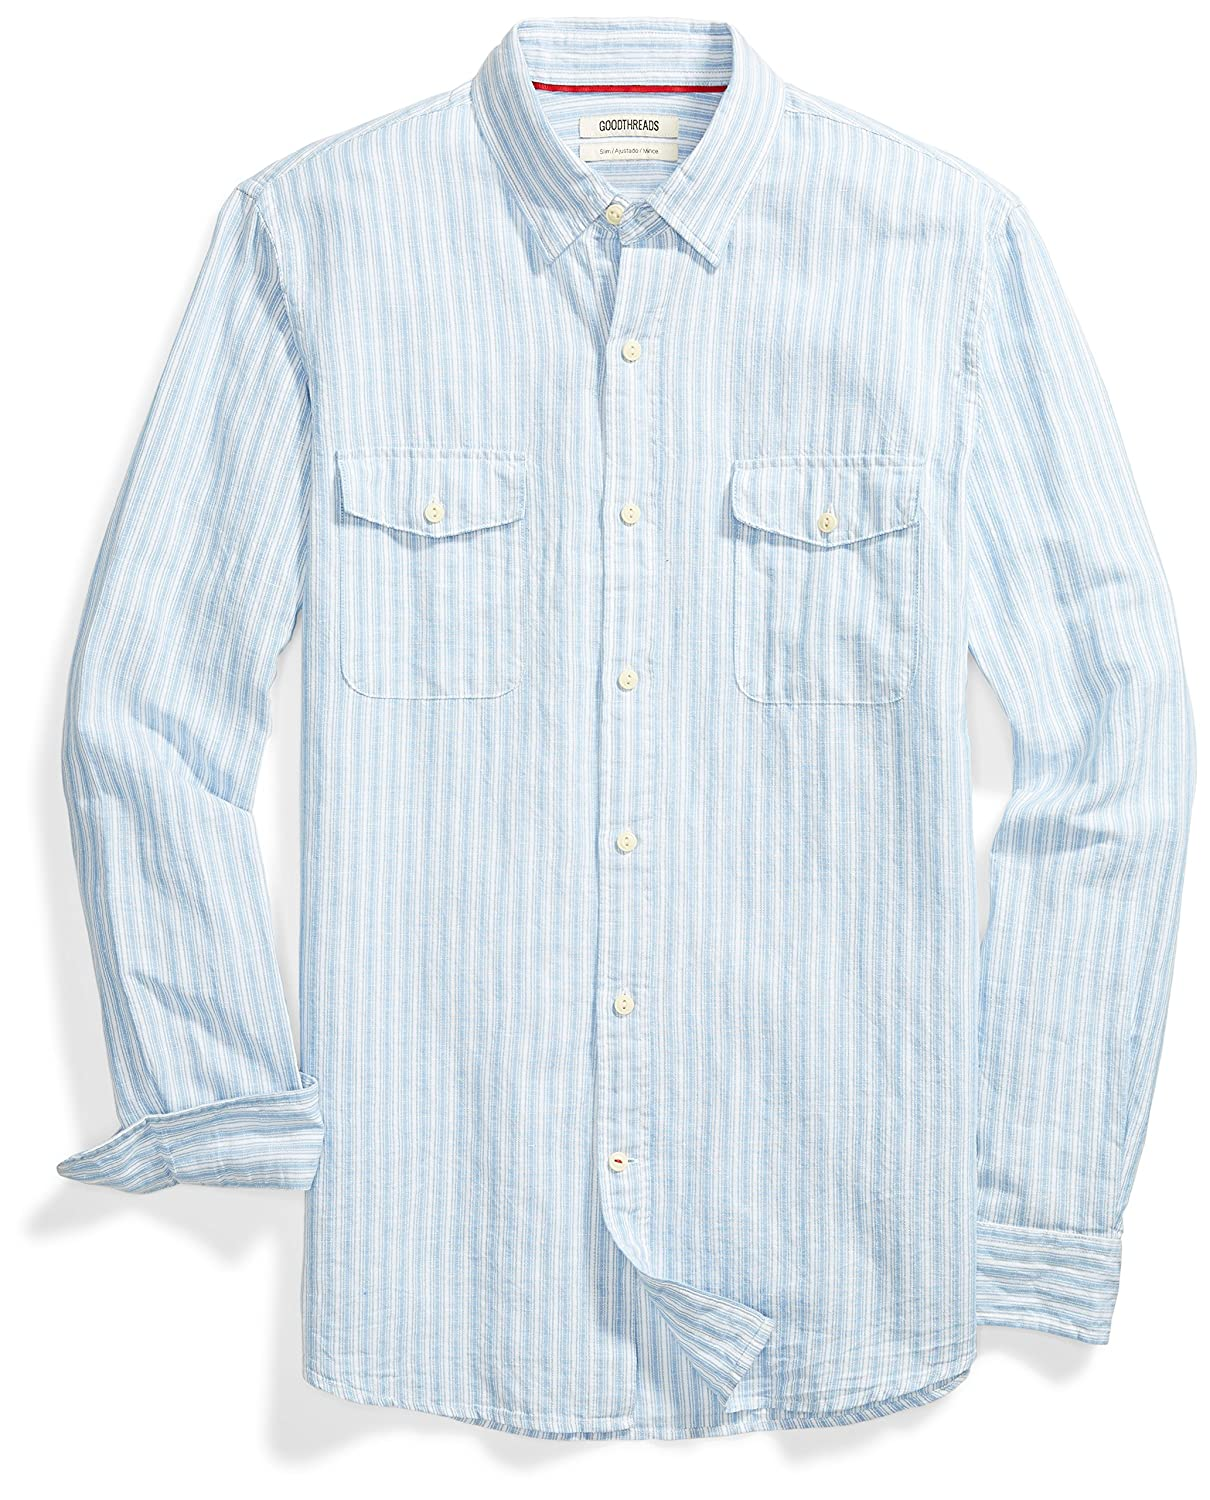 1920s Men's Dress Shirts, Casual Shirts Linen Amazon Brand - Goodthreads Mens Slim-Fit Long-Sleeve Linen and Cotton Blend Shirt $30.00 AT vintagedancer.com